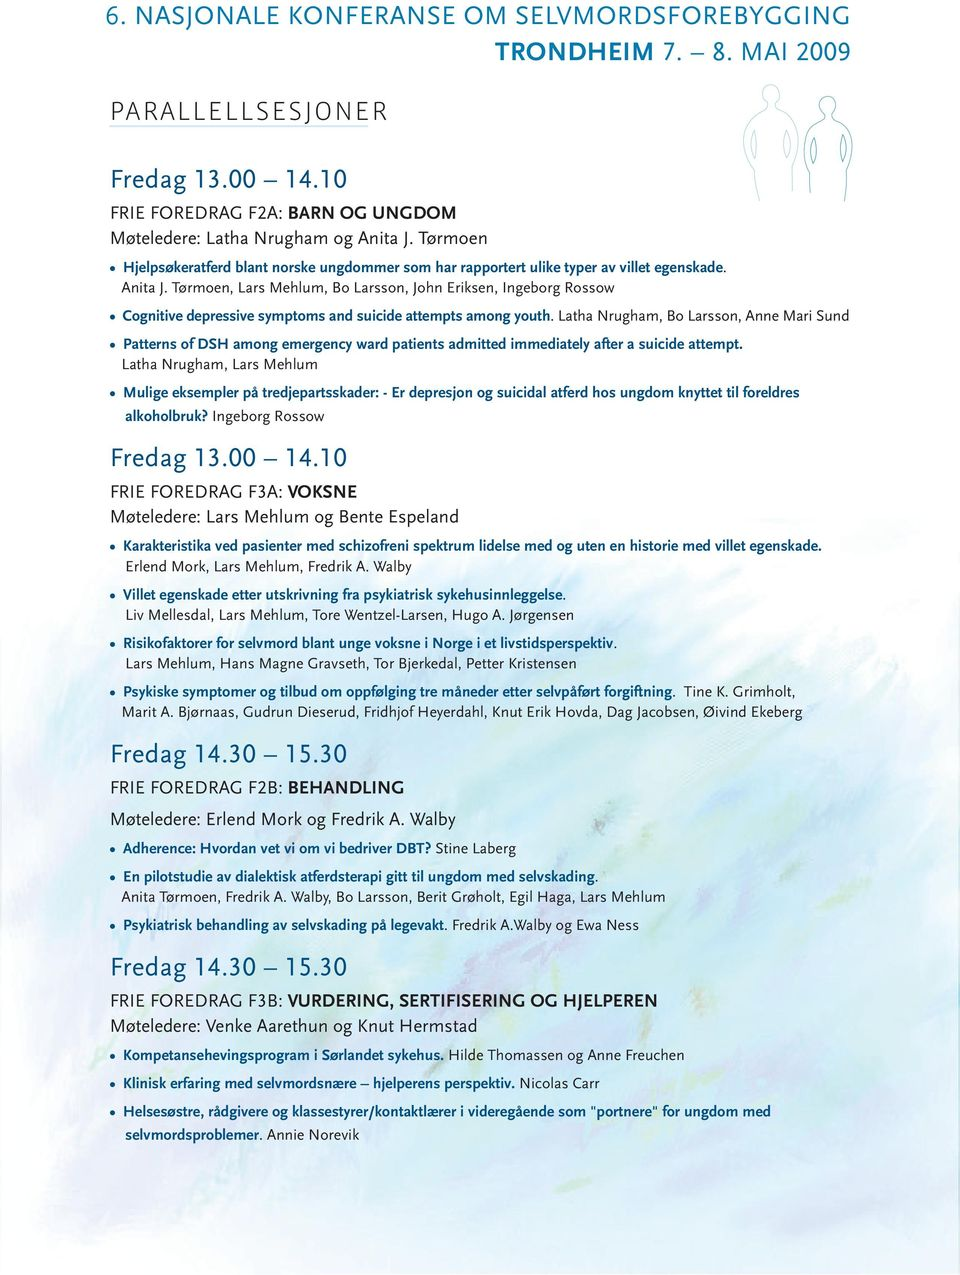 Tørmoen, Lars Mehlum, Bo Larsson, John Eriksen, Ingeborg Rossow Cognitive depressive symptoms and suicide attempts among youth.